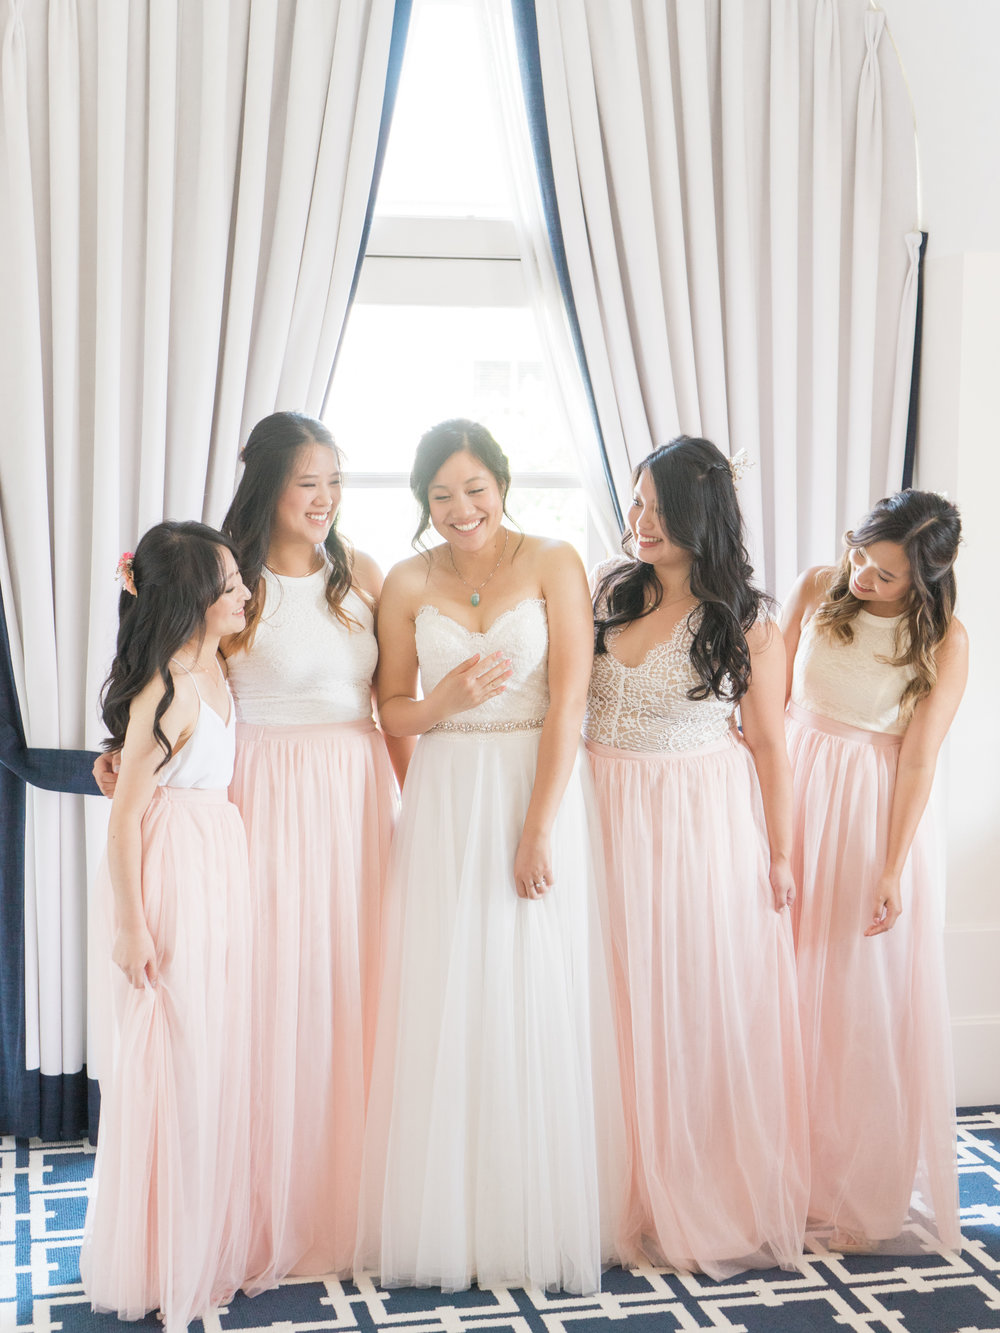 trynhphoto_wedding_photography_Standford_PaloAlto_SF_BayArea_Destination_OC_HA-29.jpg